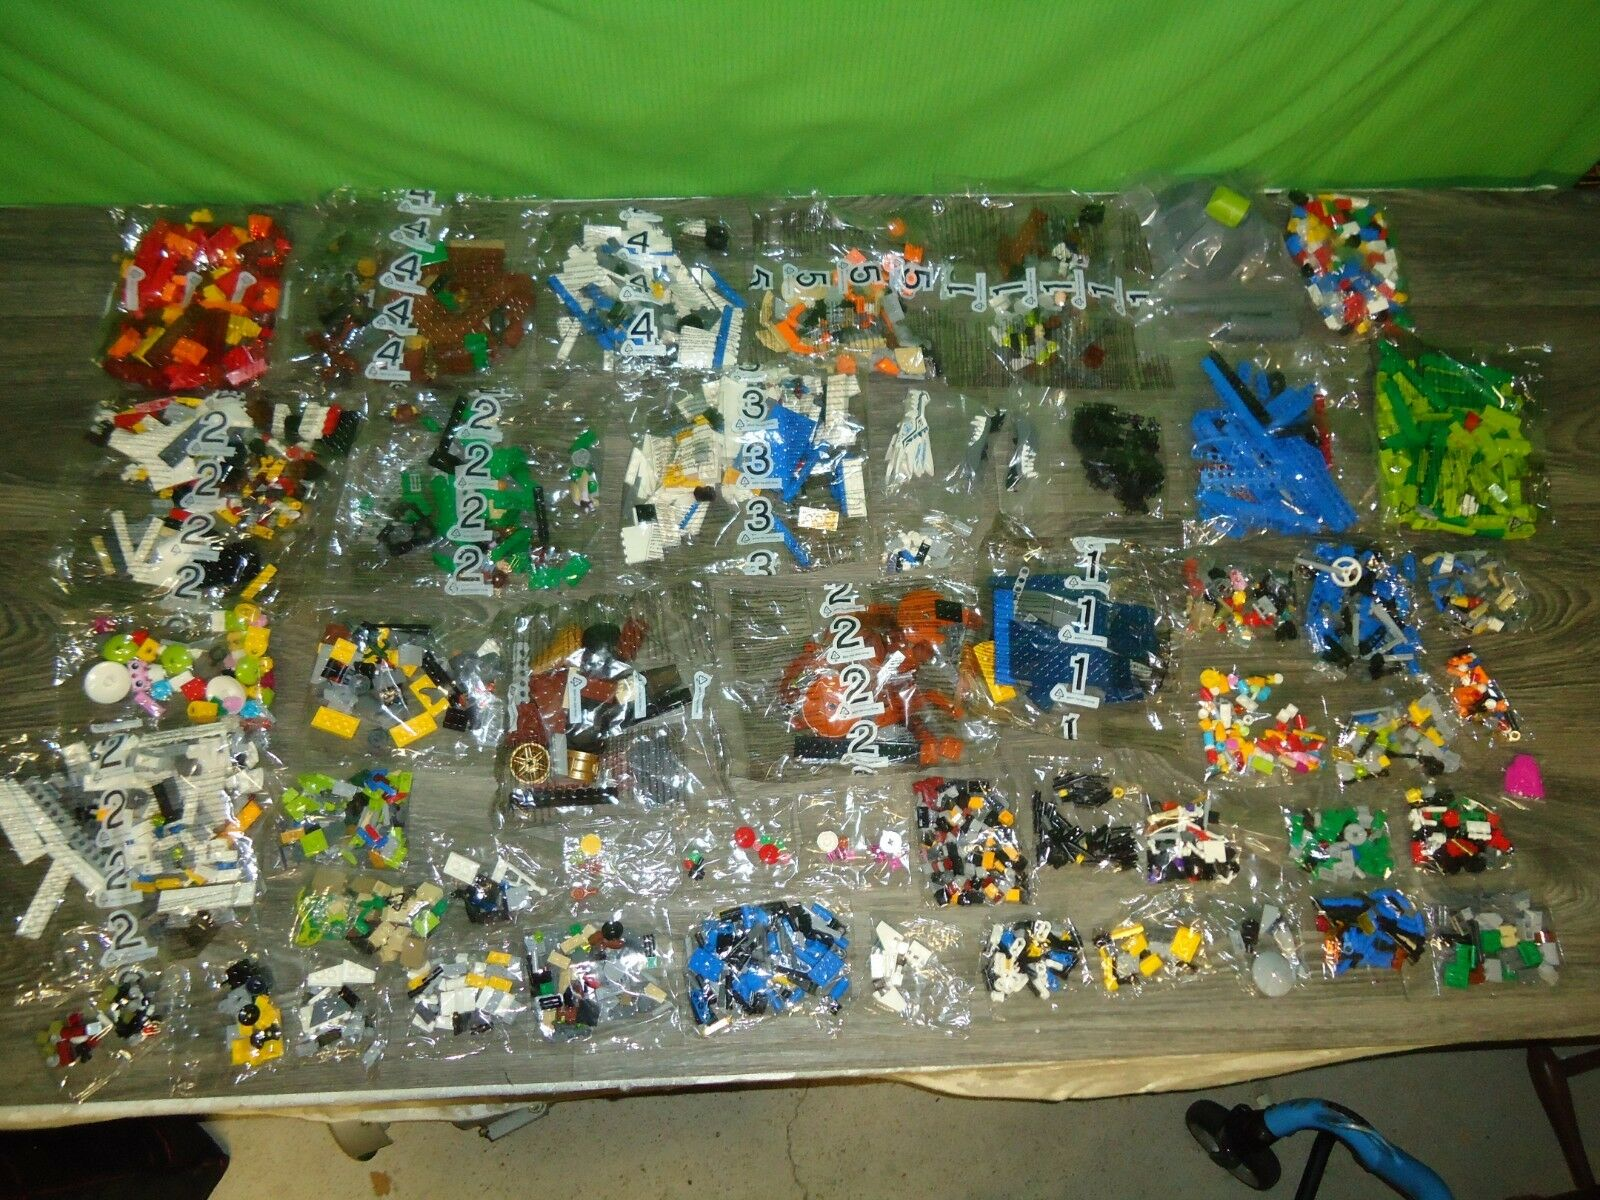 Lego misb lot of factory sealed baggies bags